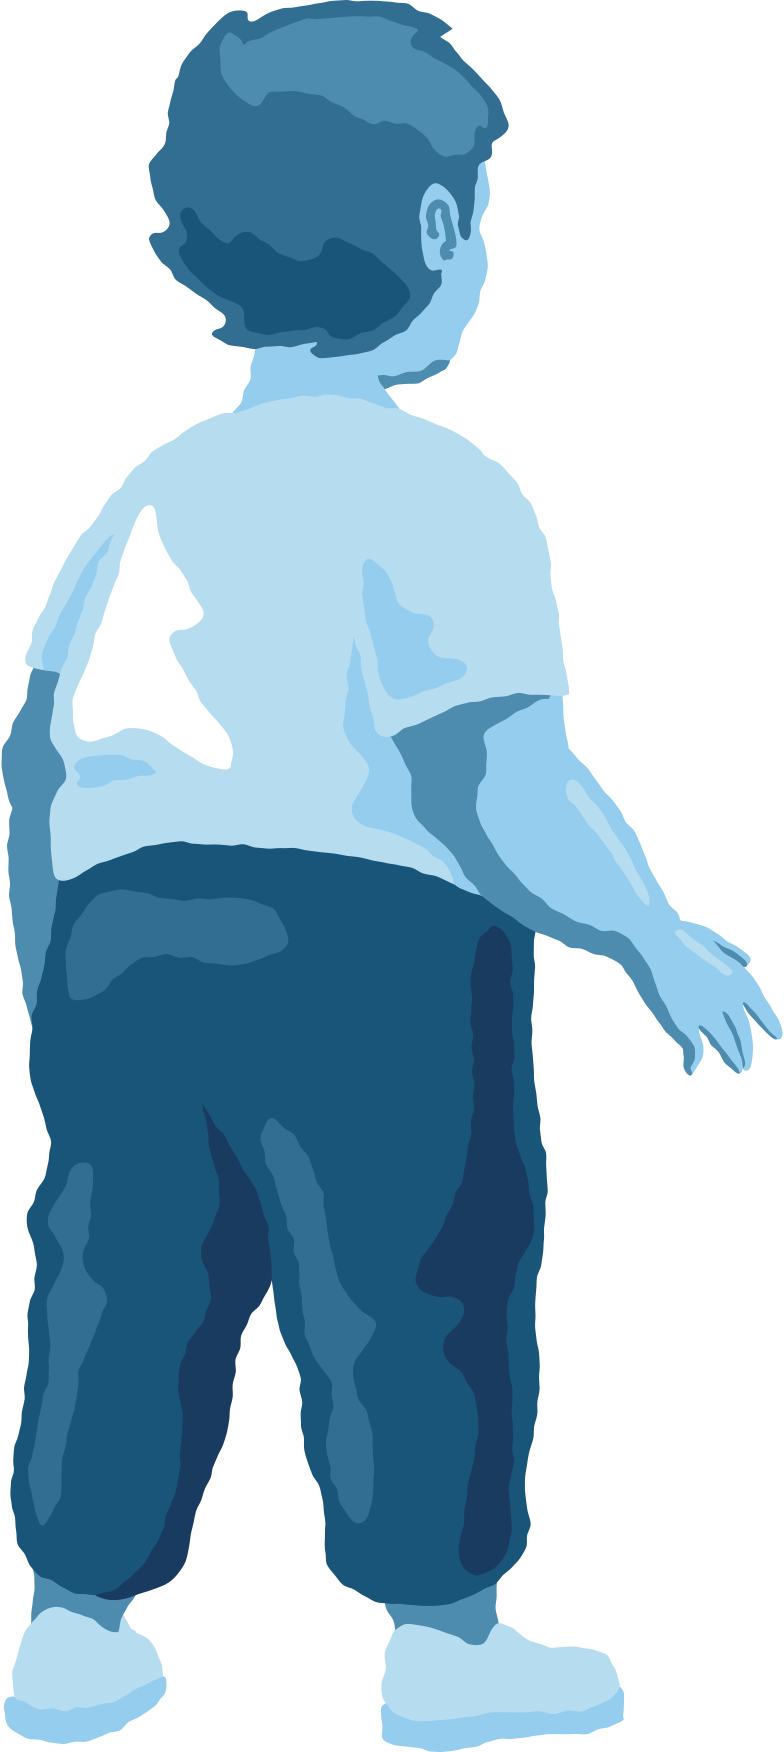 chubby boy standing back Clipart illustration in PNG, SVG